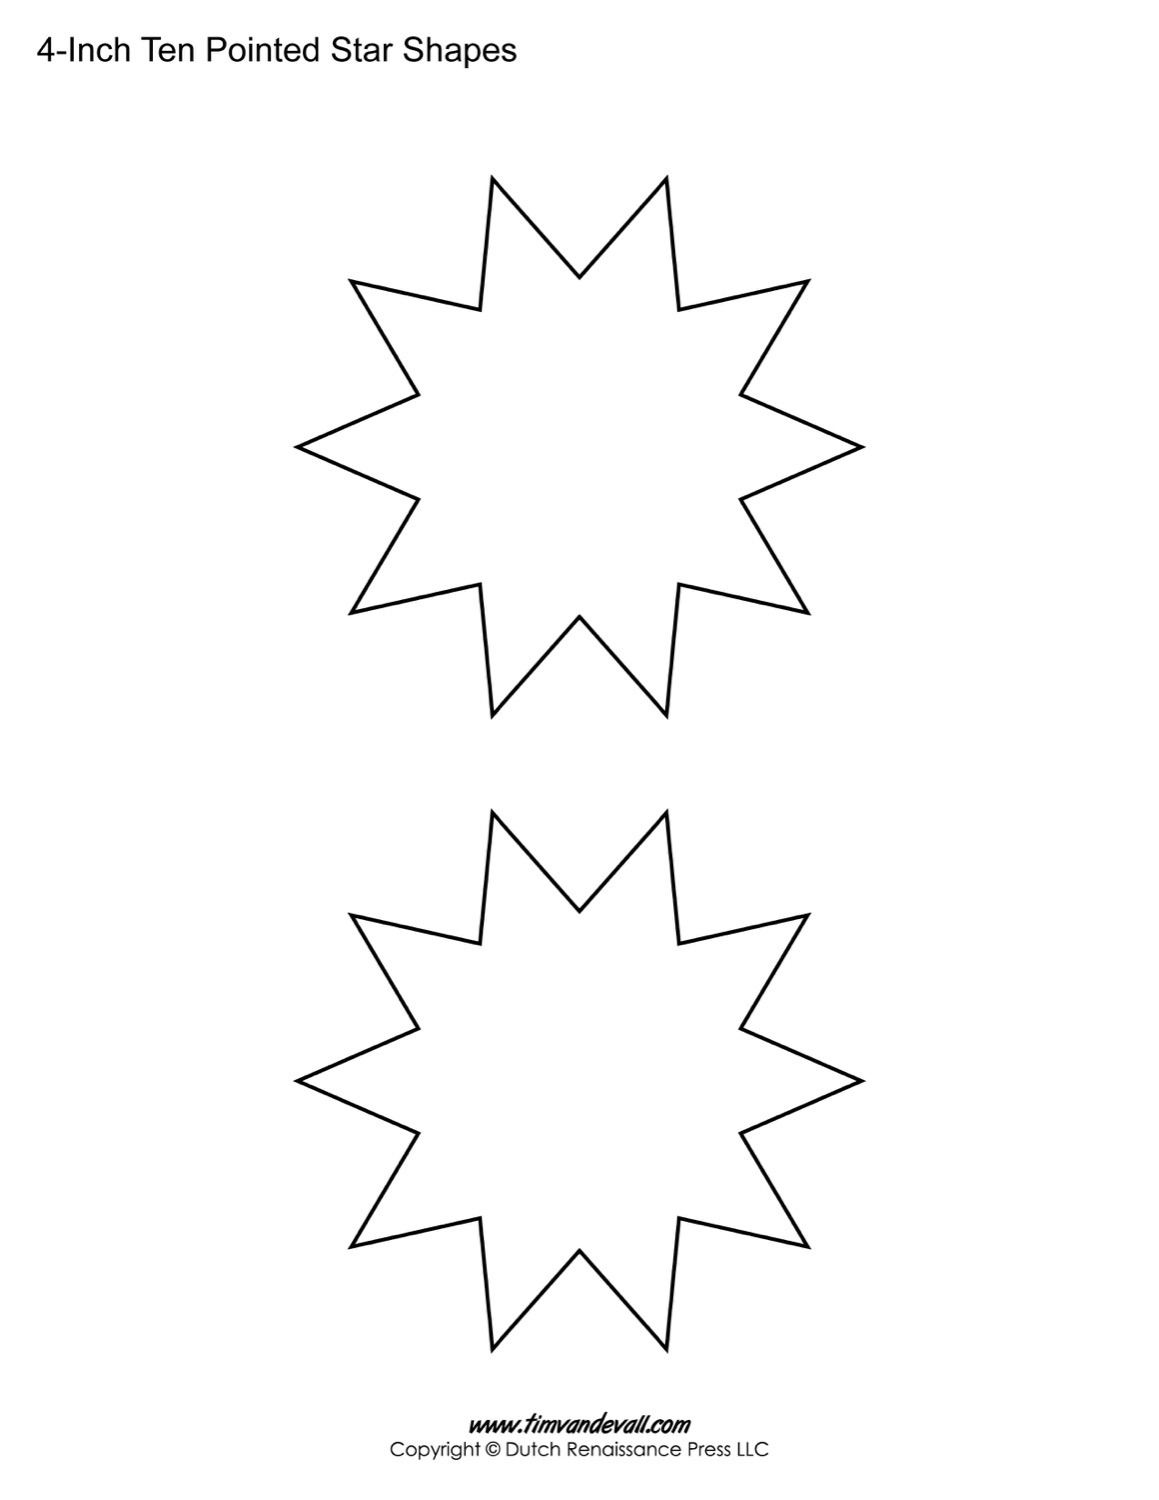 photo relating to Printable Arts and Crafts referred to as Blank 10 Pointed Star Styles Printable Star Template for